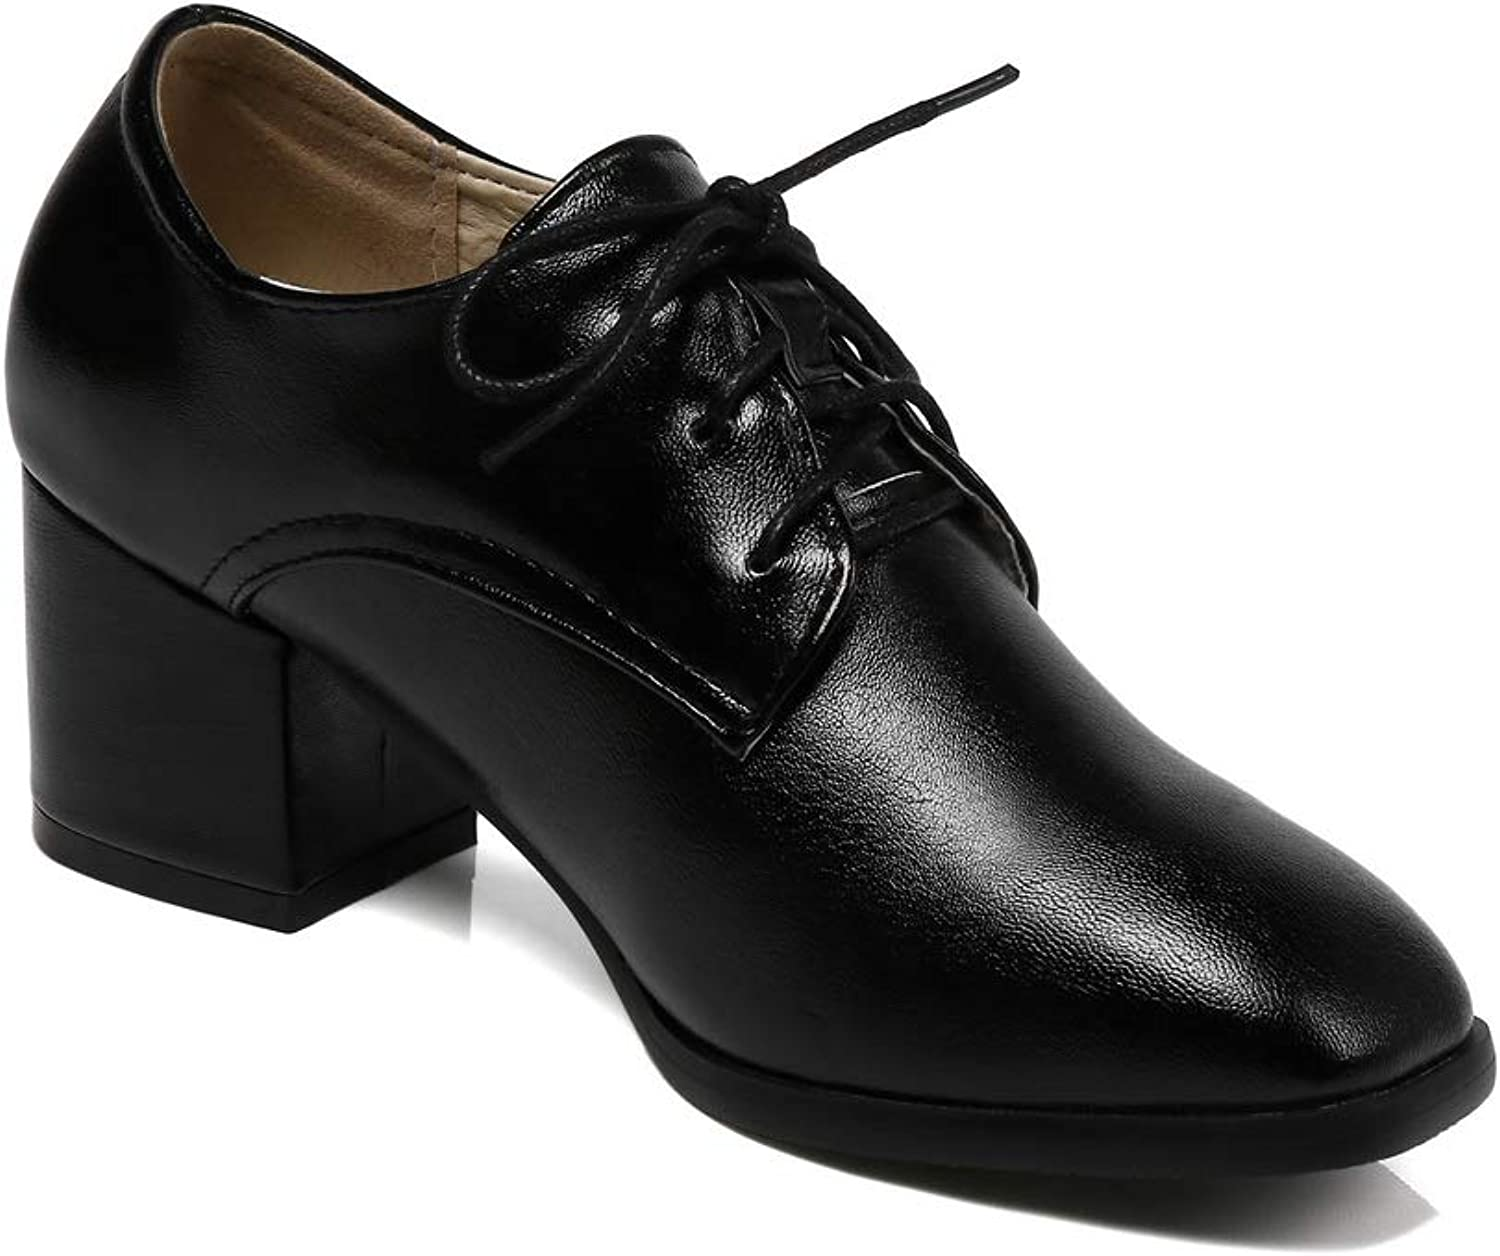 AdeeSu Womens Pumps-shoes Solid Fabric Leather Pumps shoes SDC06358